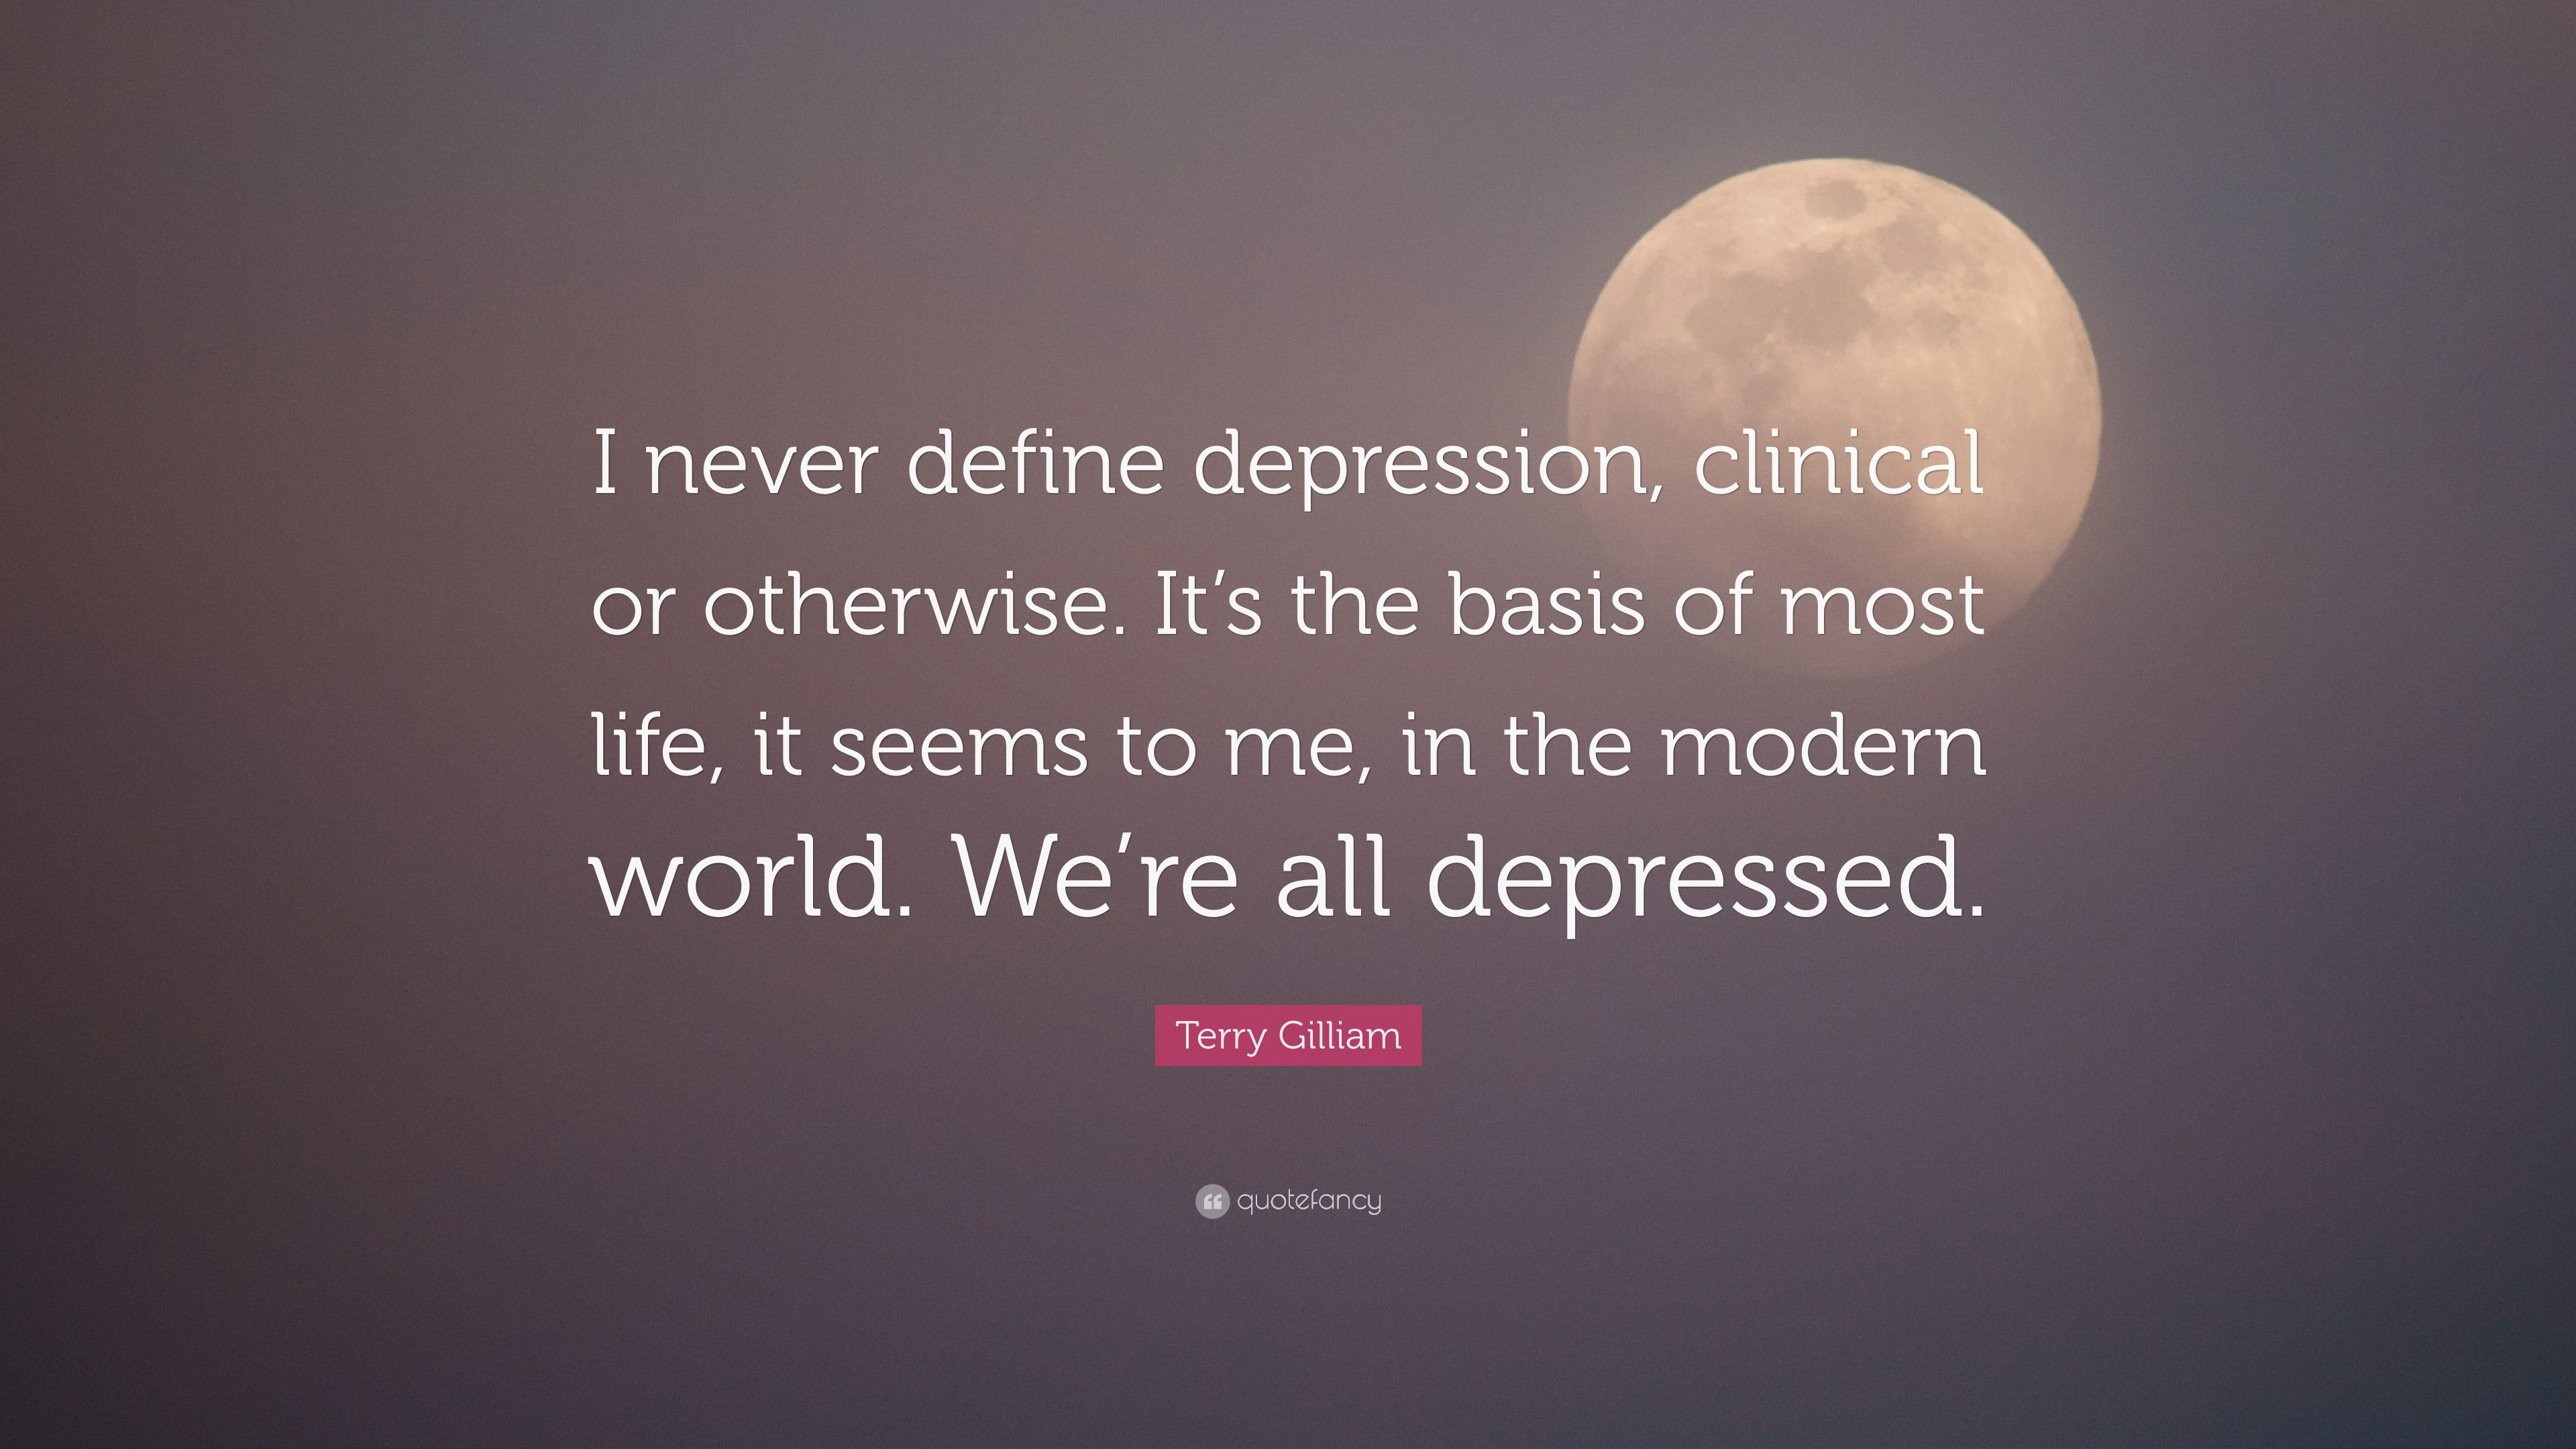 terry gilliam quote i never define depression clinical or otherwise its the